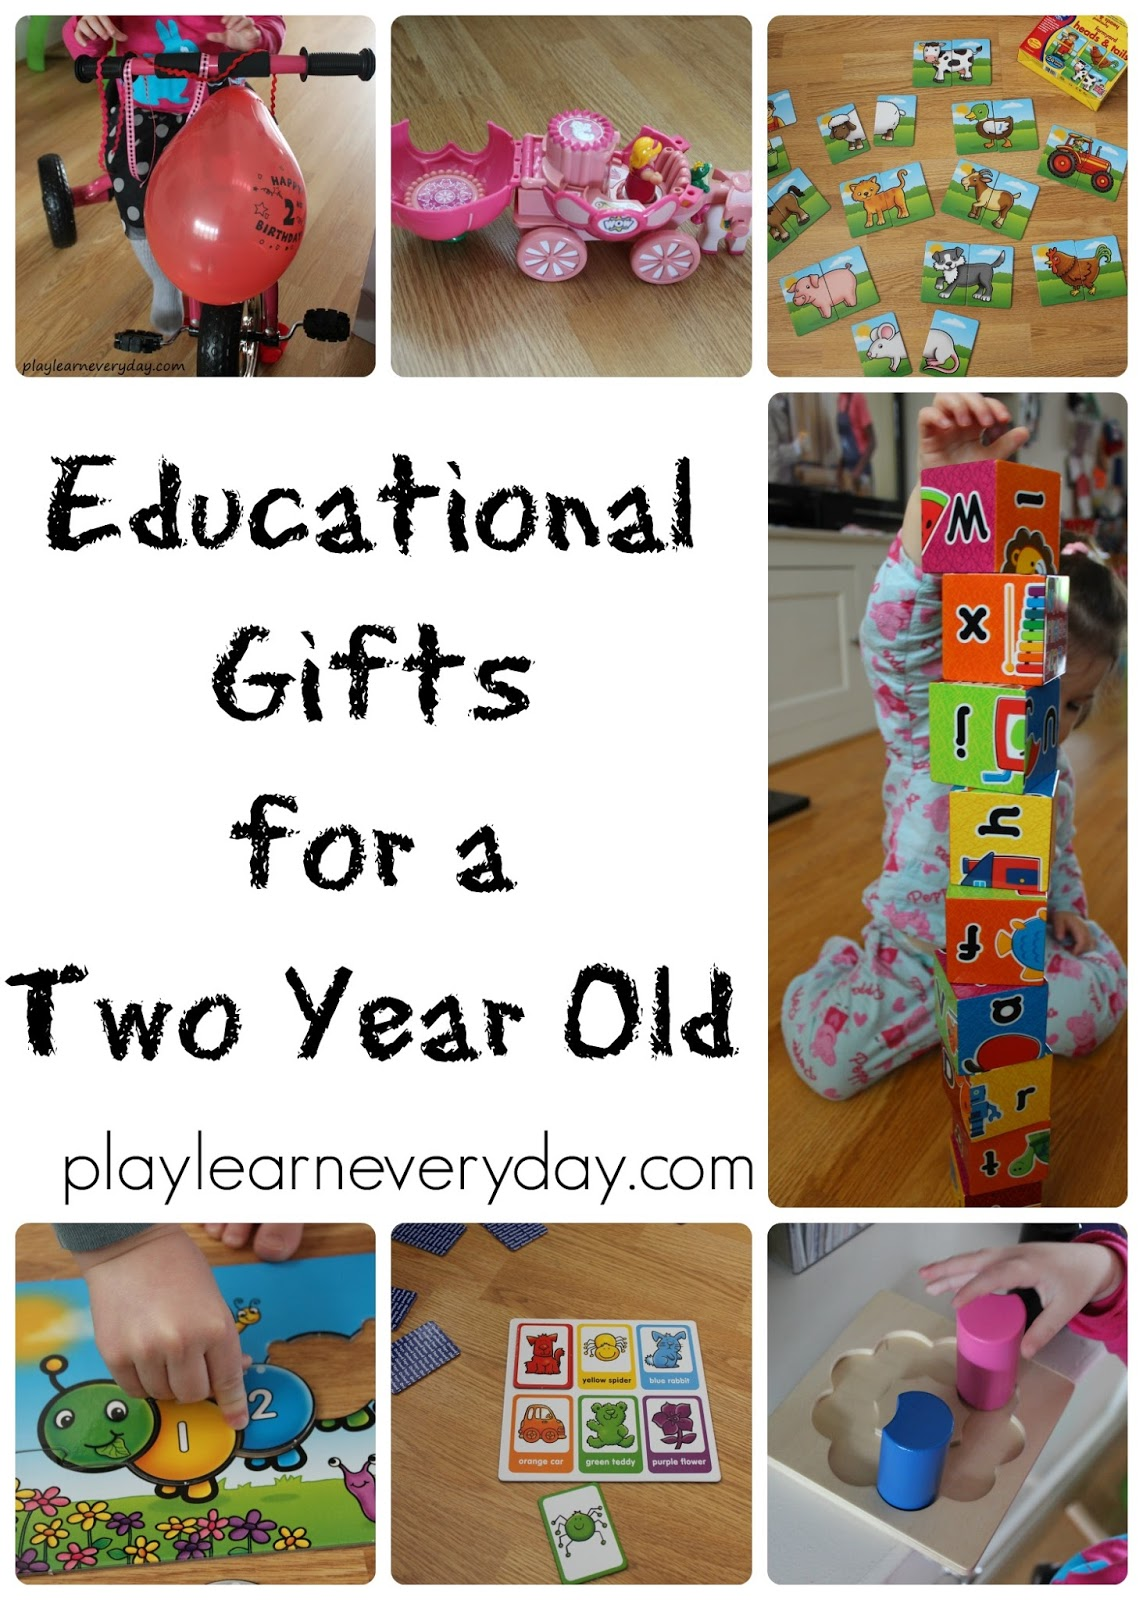 Xmas gifts for 2 year old girl